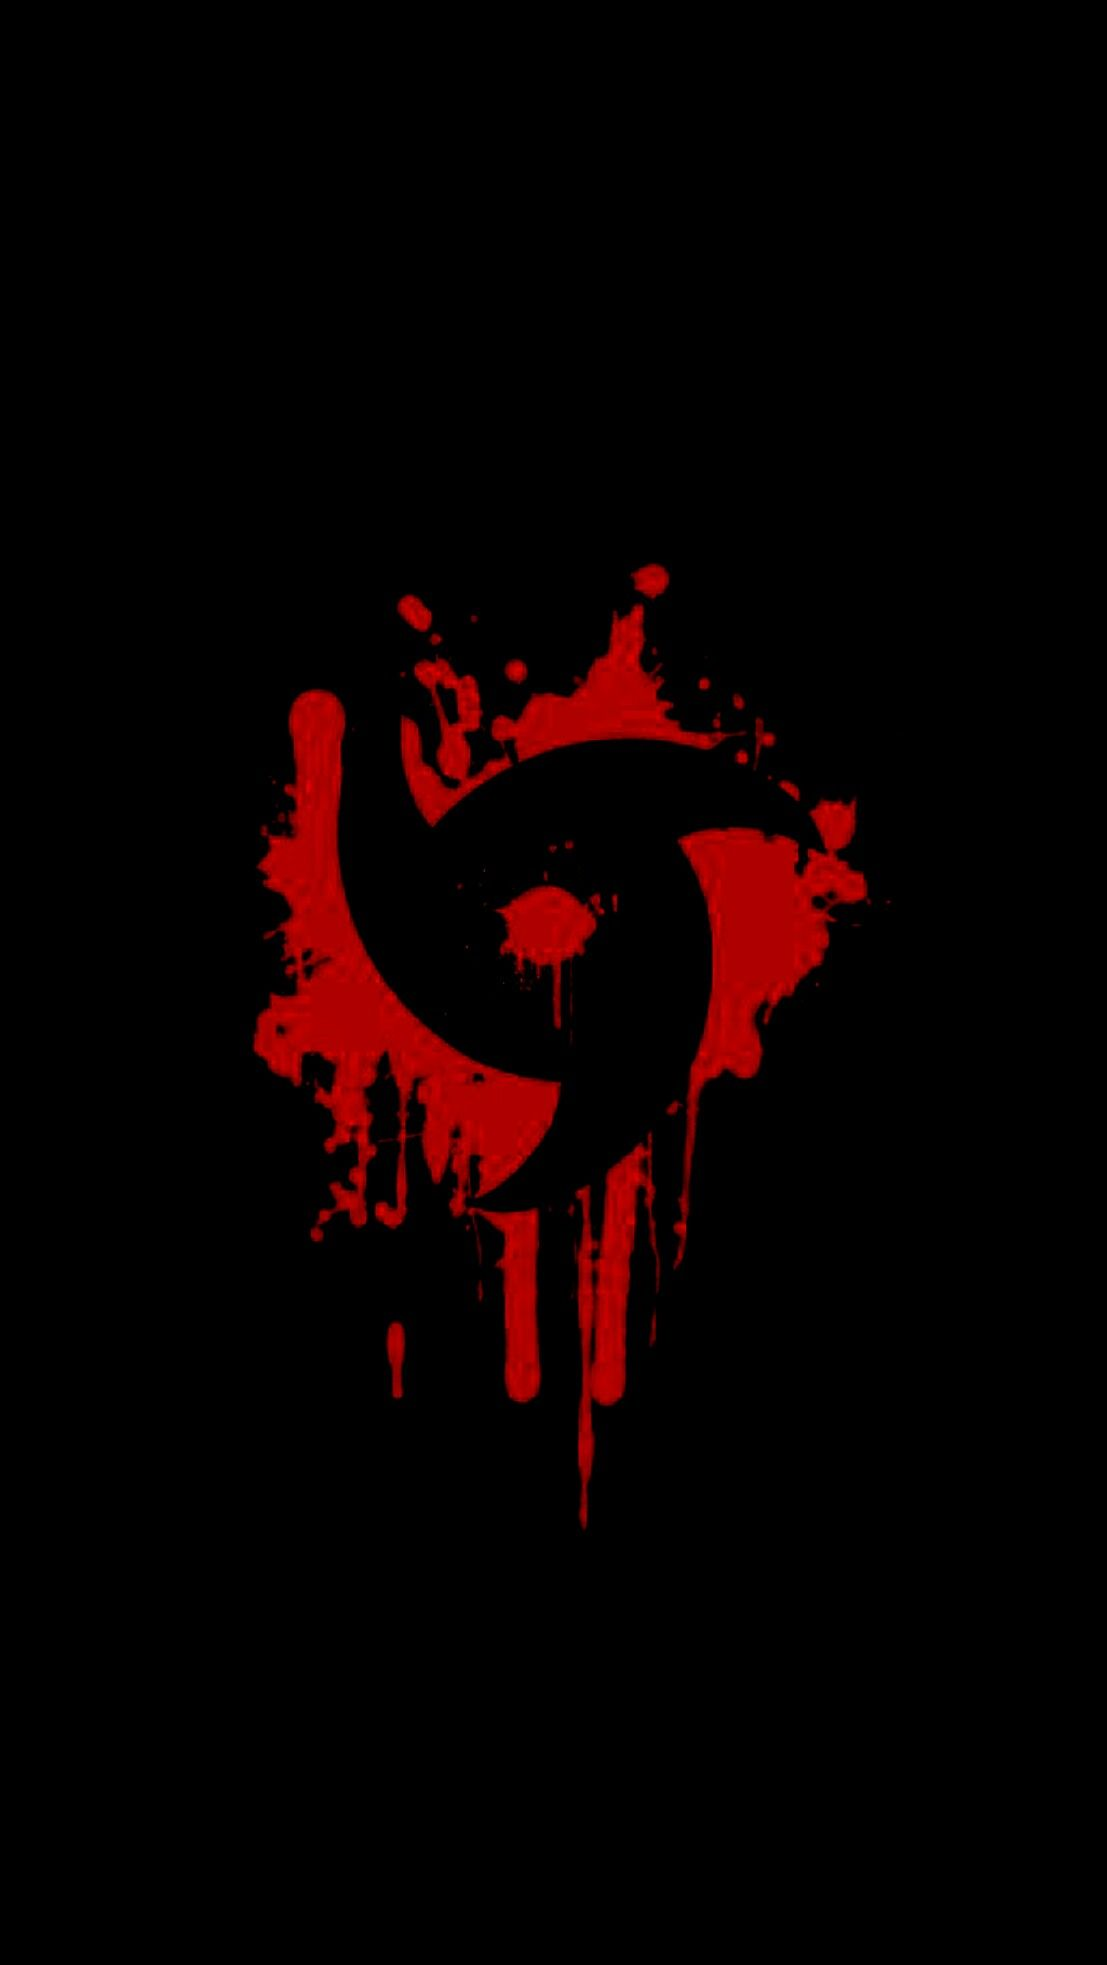 Naruto Anime Black Wallpaper Android Iphone Mangekyou Sharingan Itachi Papel De Parede Anime